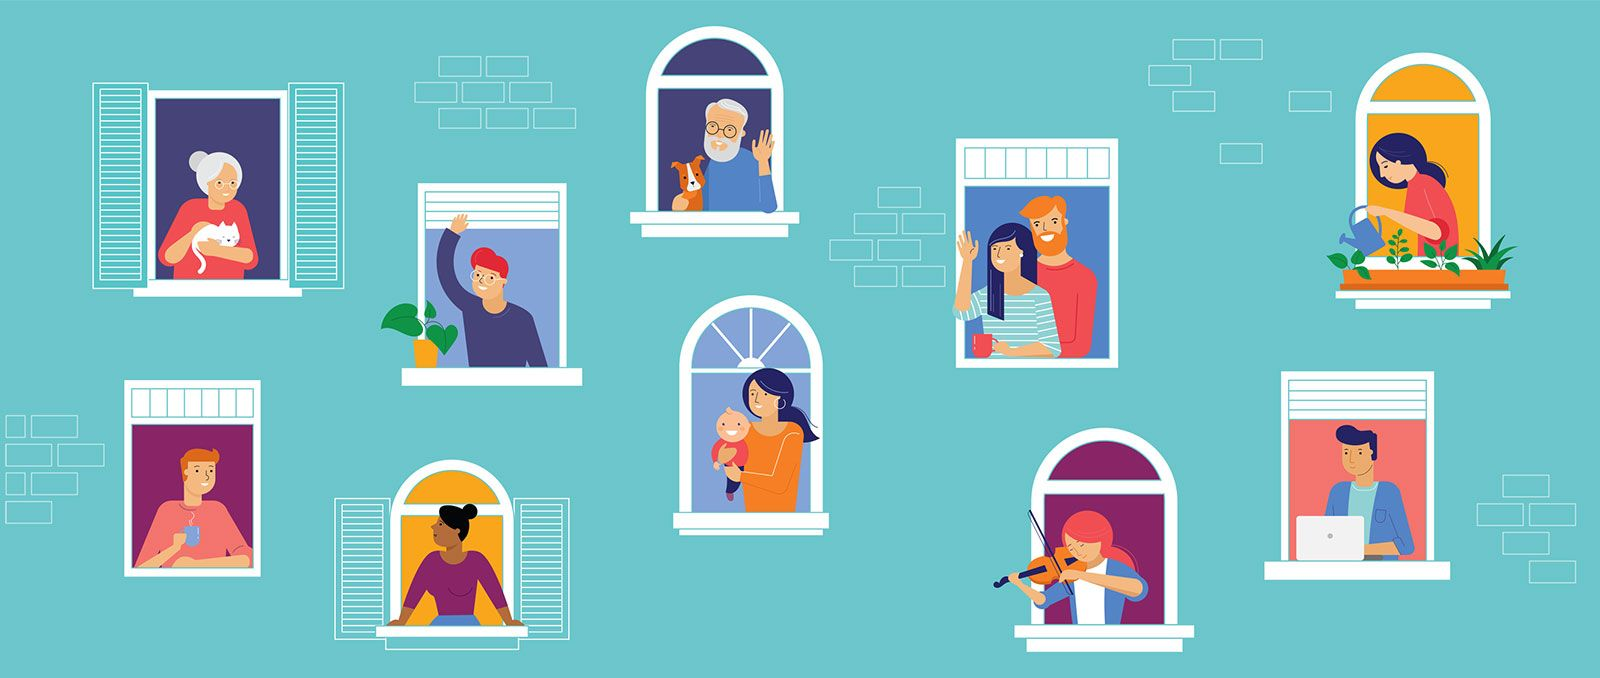 Neighbours greet each other from their windows banner image